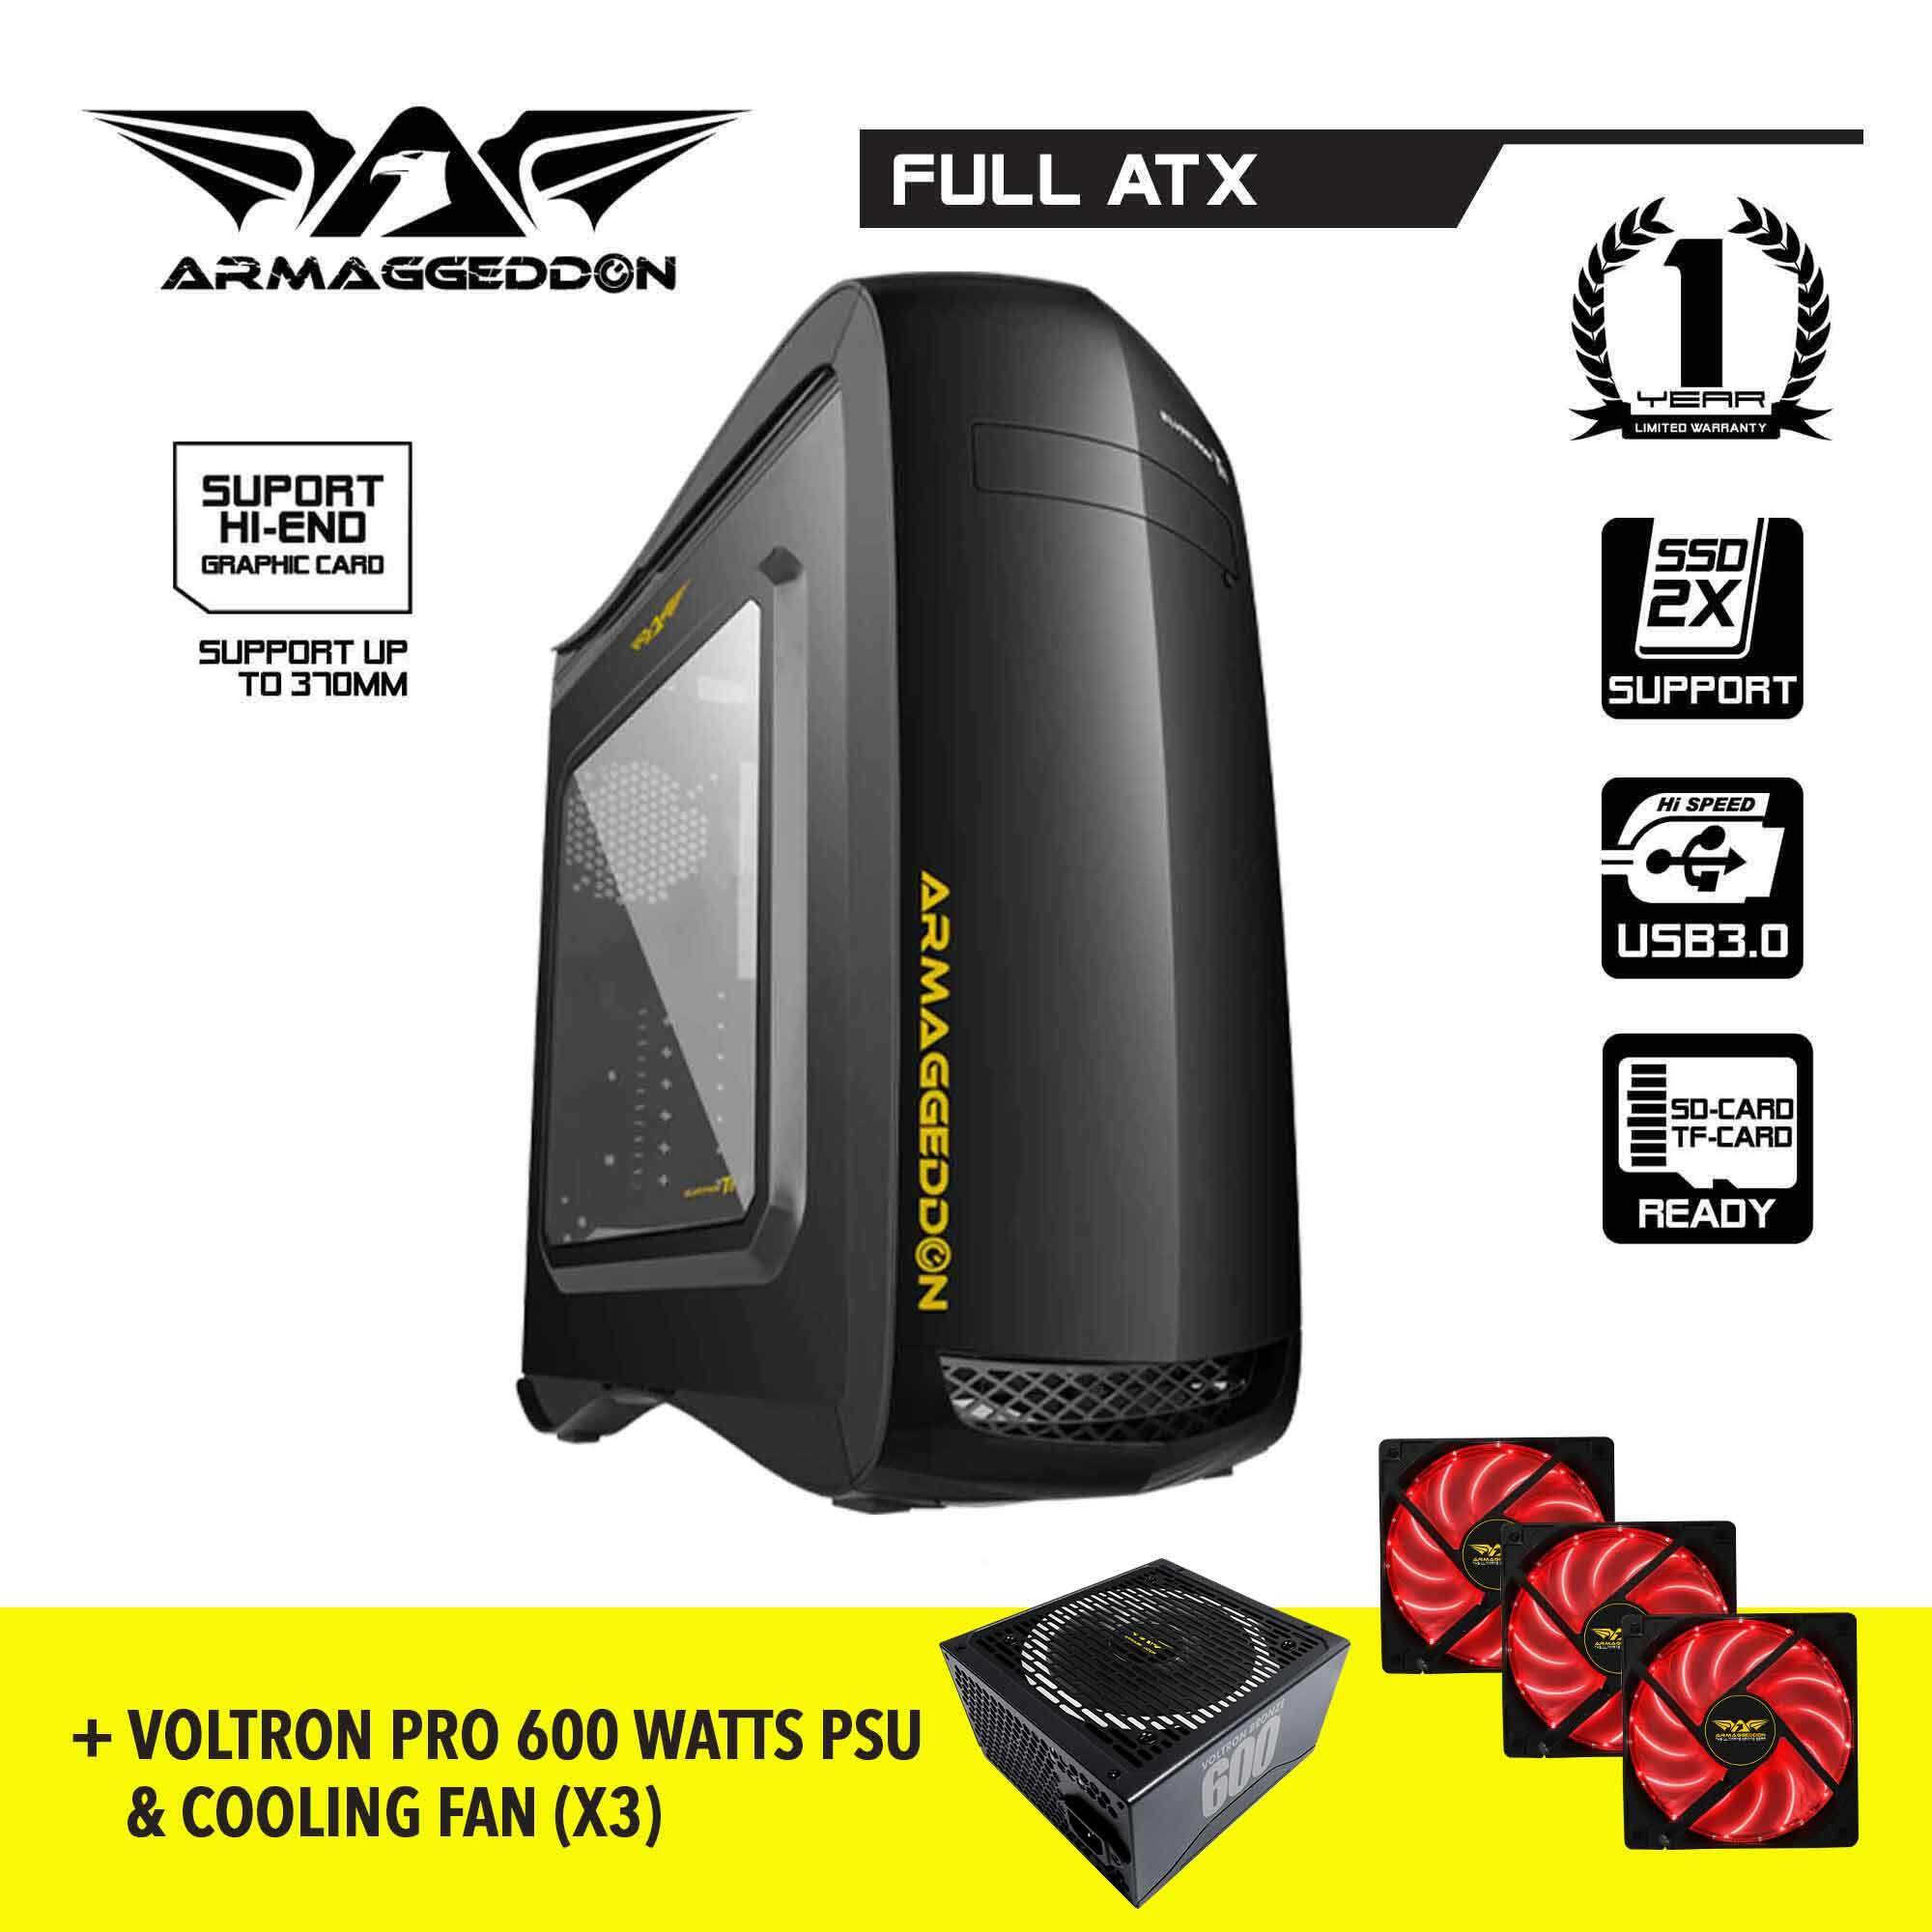 Armaggeddon T11 ATX Gaming PC Case and Voltron Gold 800 PSU / Voltron Bronze 600 PSU Free Cooling Fan (Bundle Promo) Malaysia